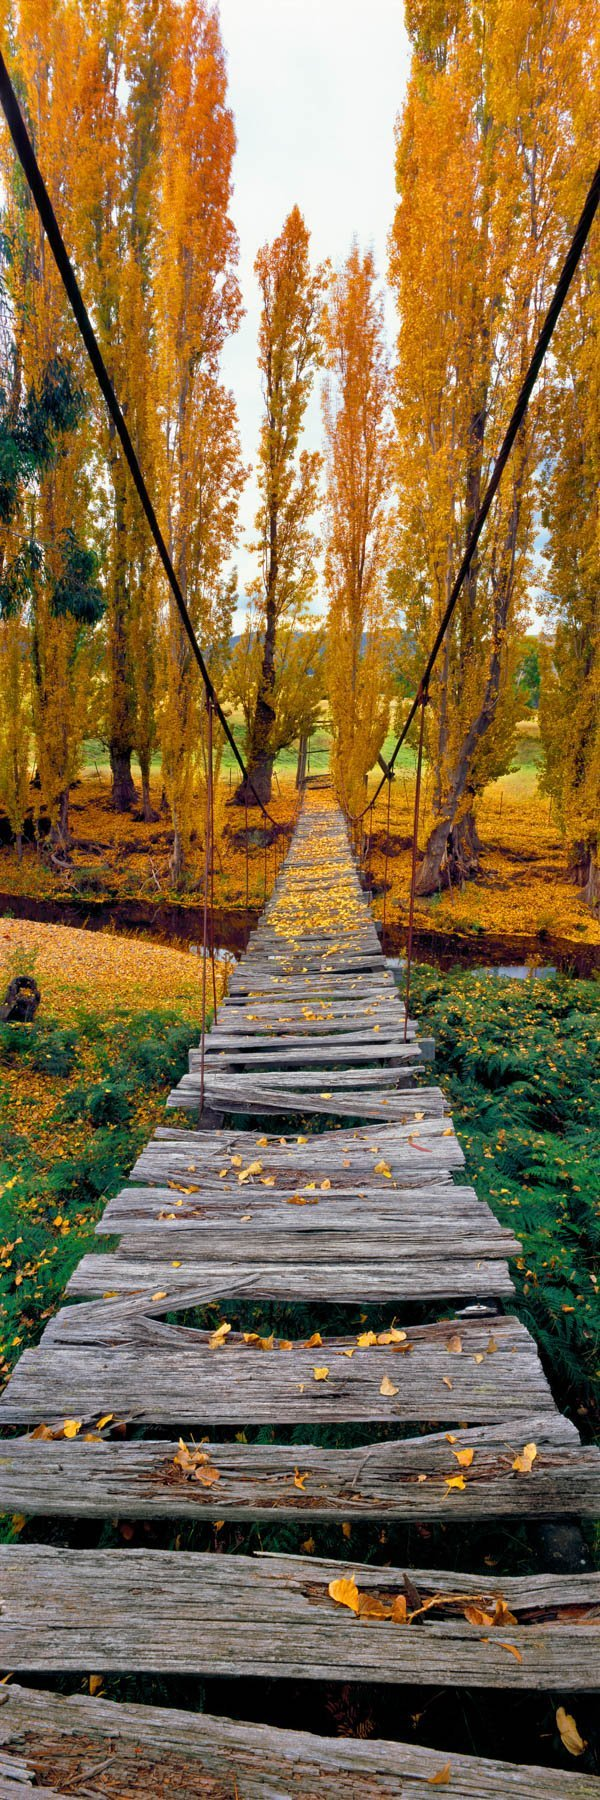 Trees resplendent in autumn colours frame an old suspension bridge over Swifts Creek, Omeo, Victoria, Australia.